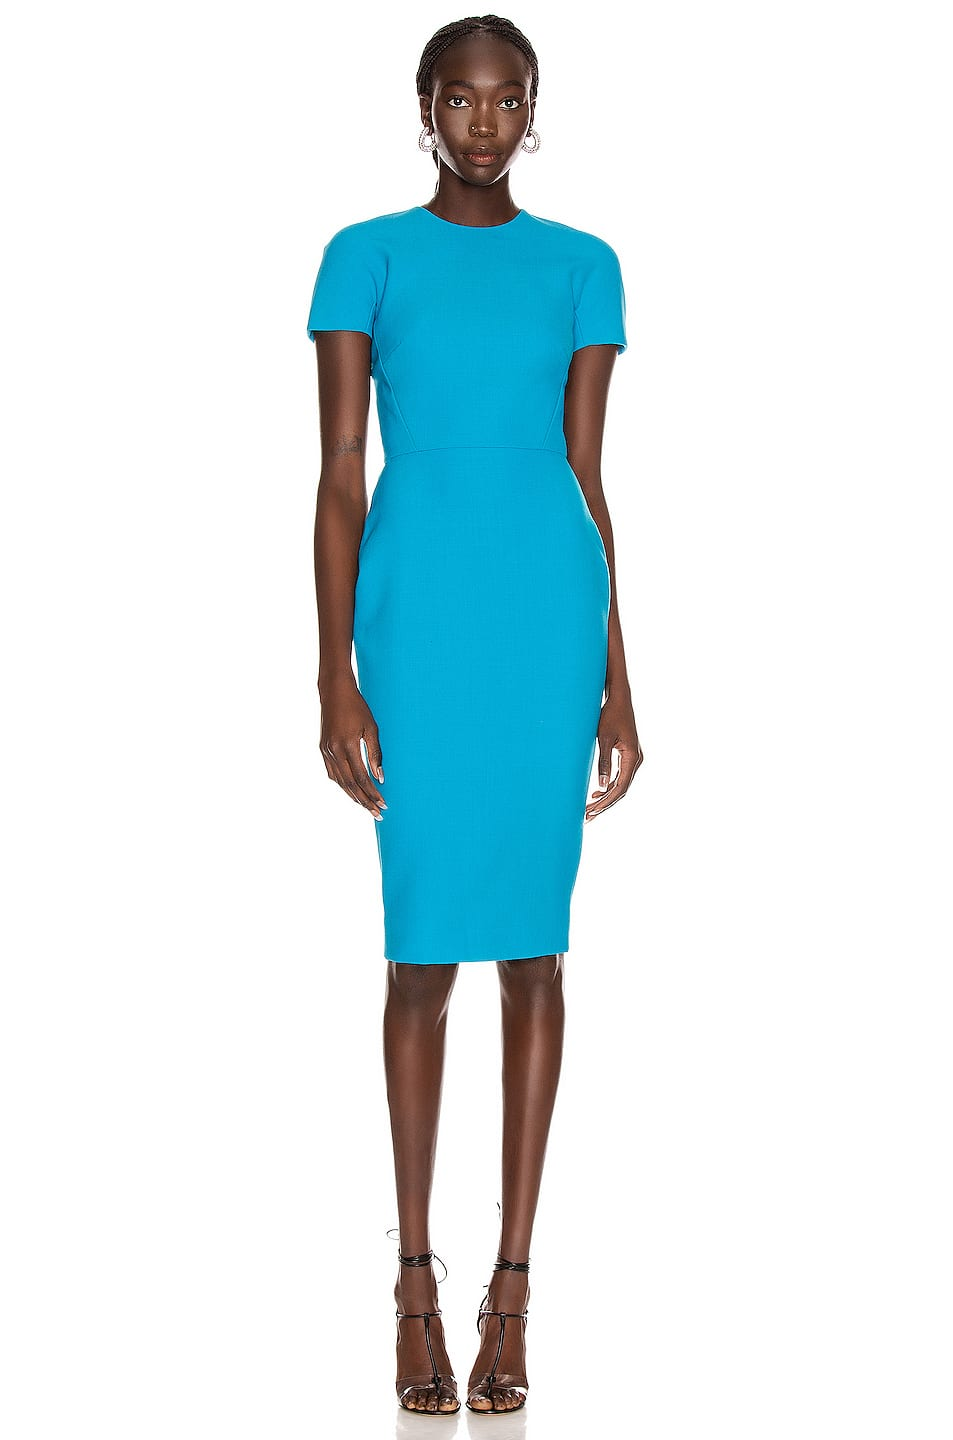 Add Some Color To Your Closet With This Eye Catching Blue Shirt Dress It Is Partially Lined With A Zip At The Back Fashion High Fashion Dresses Fitted Dress [ 1440 x 953 Pixel ]